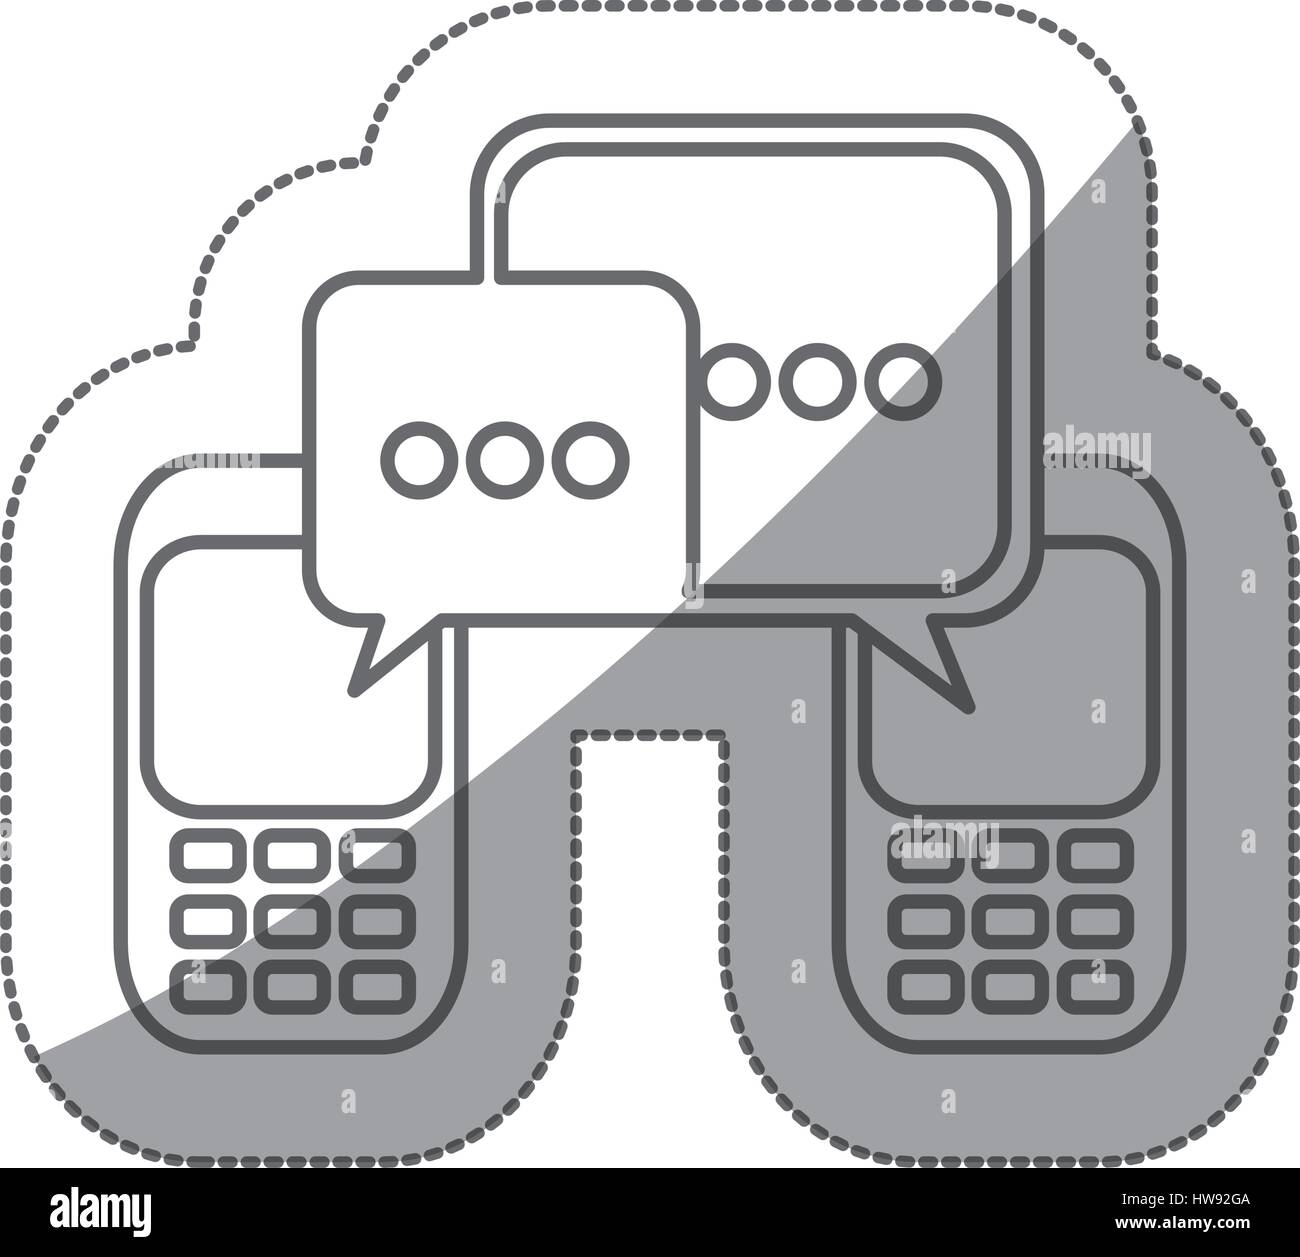 grayscale silhouette sticker of cell phones communication dialogue box - Stock Image